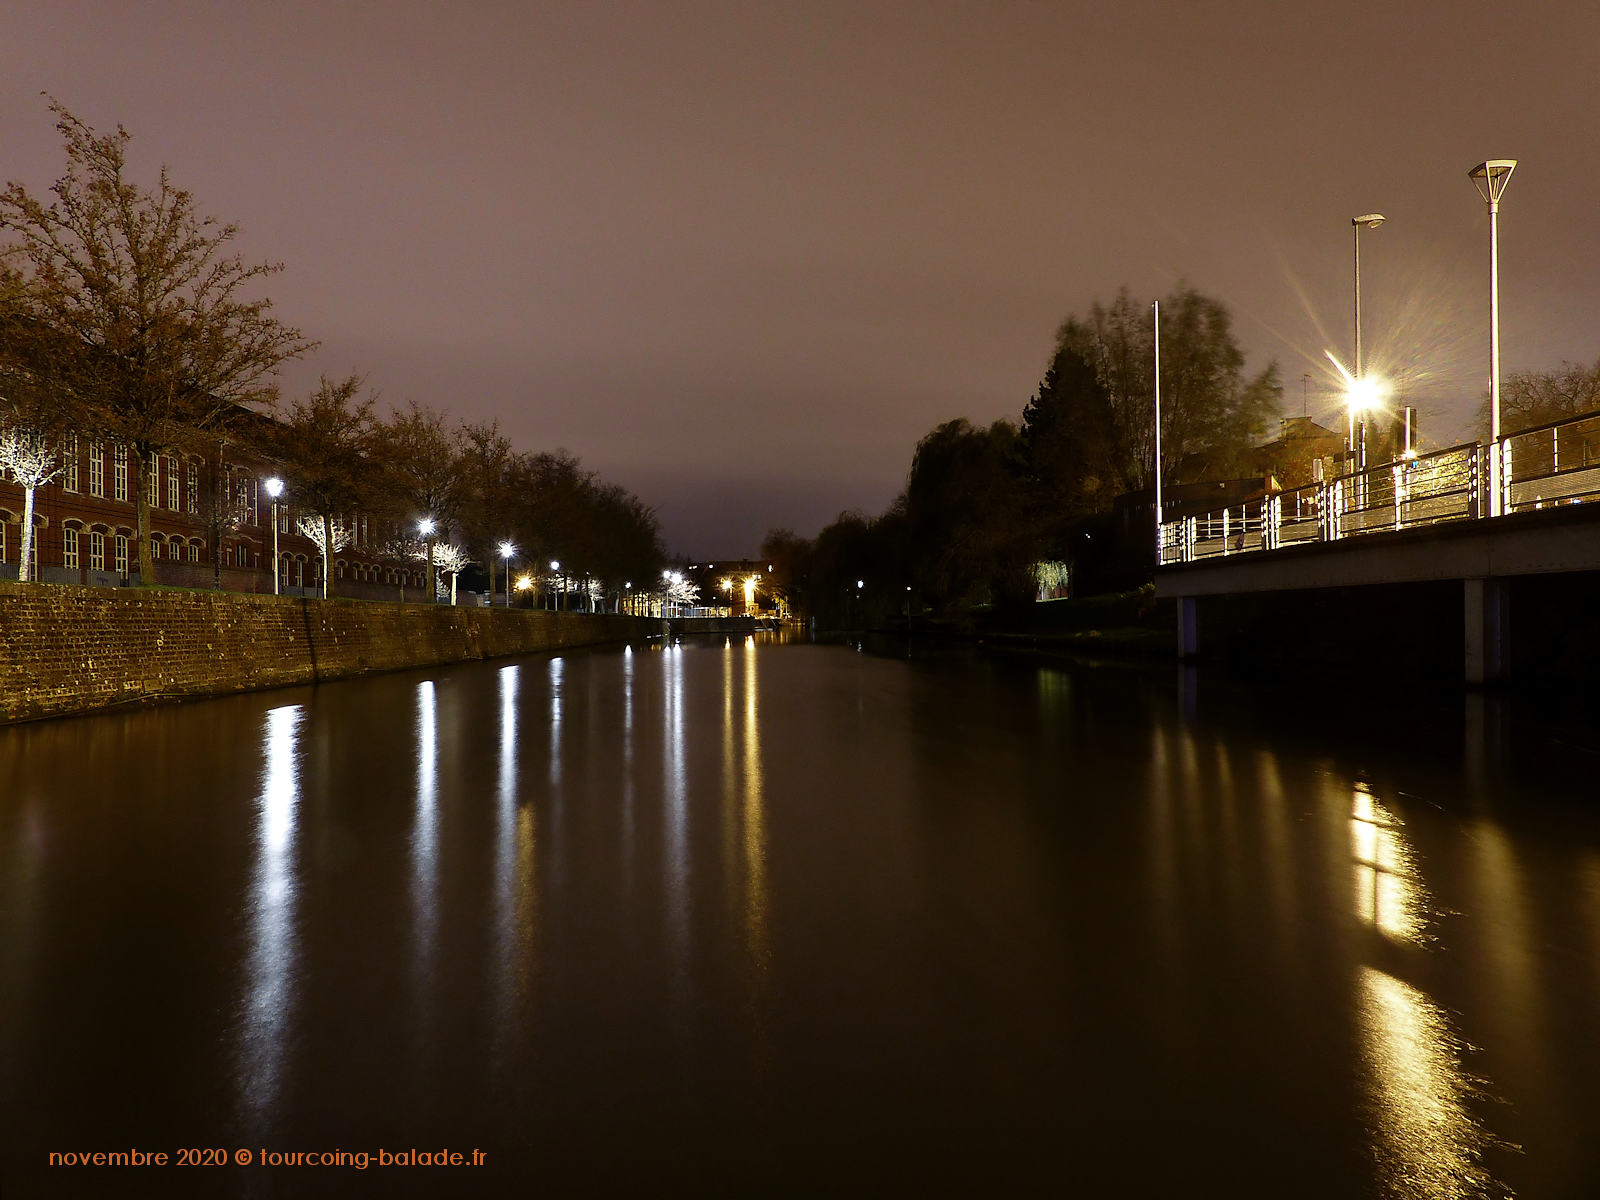 Tourcoing Nuit 2020 - Canal